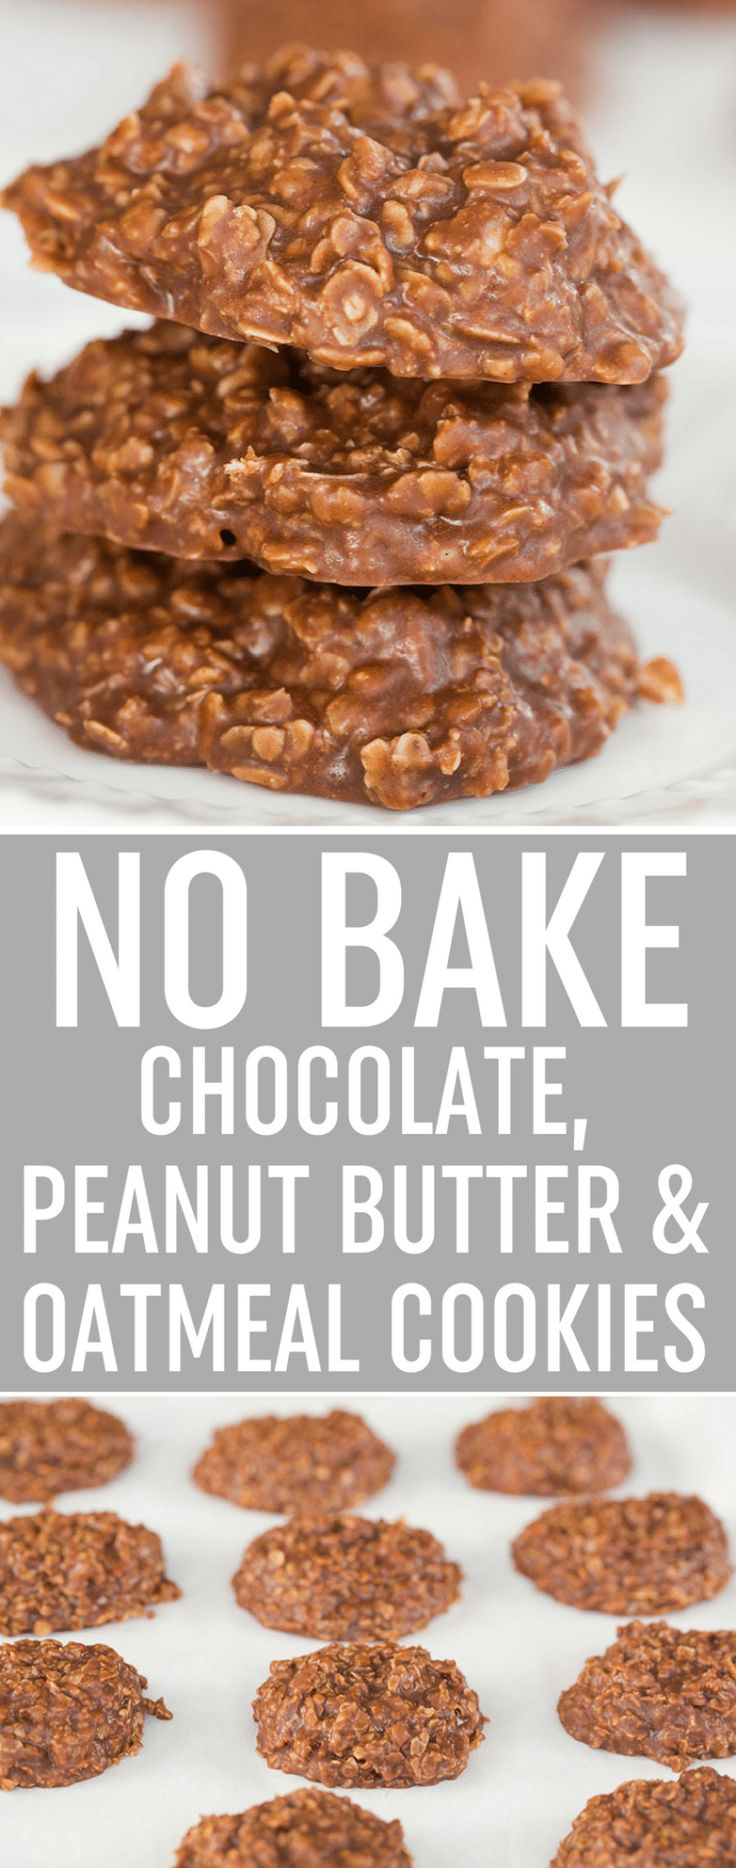 This No Bake Chocolate, Peanut Butter & Oatmeal Cookie recipe is a classic! It's super easy, takes only minutes and is great to make with kids.